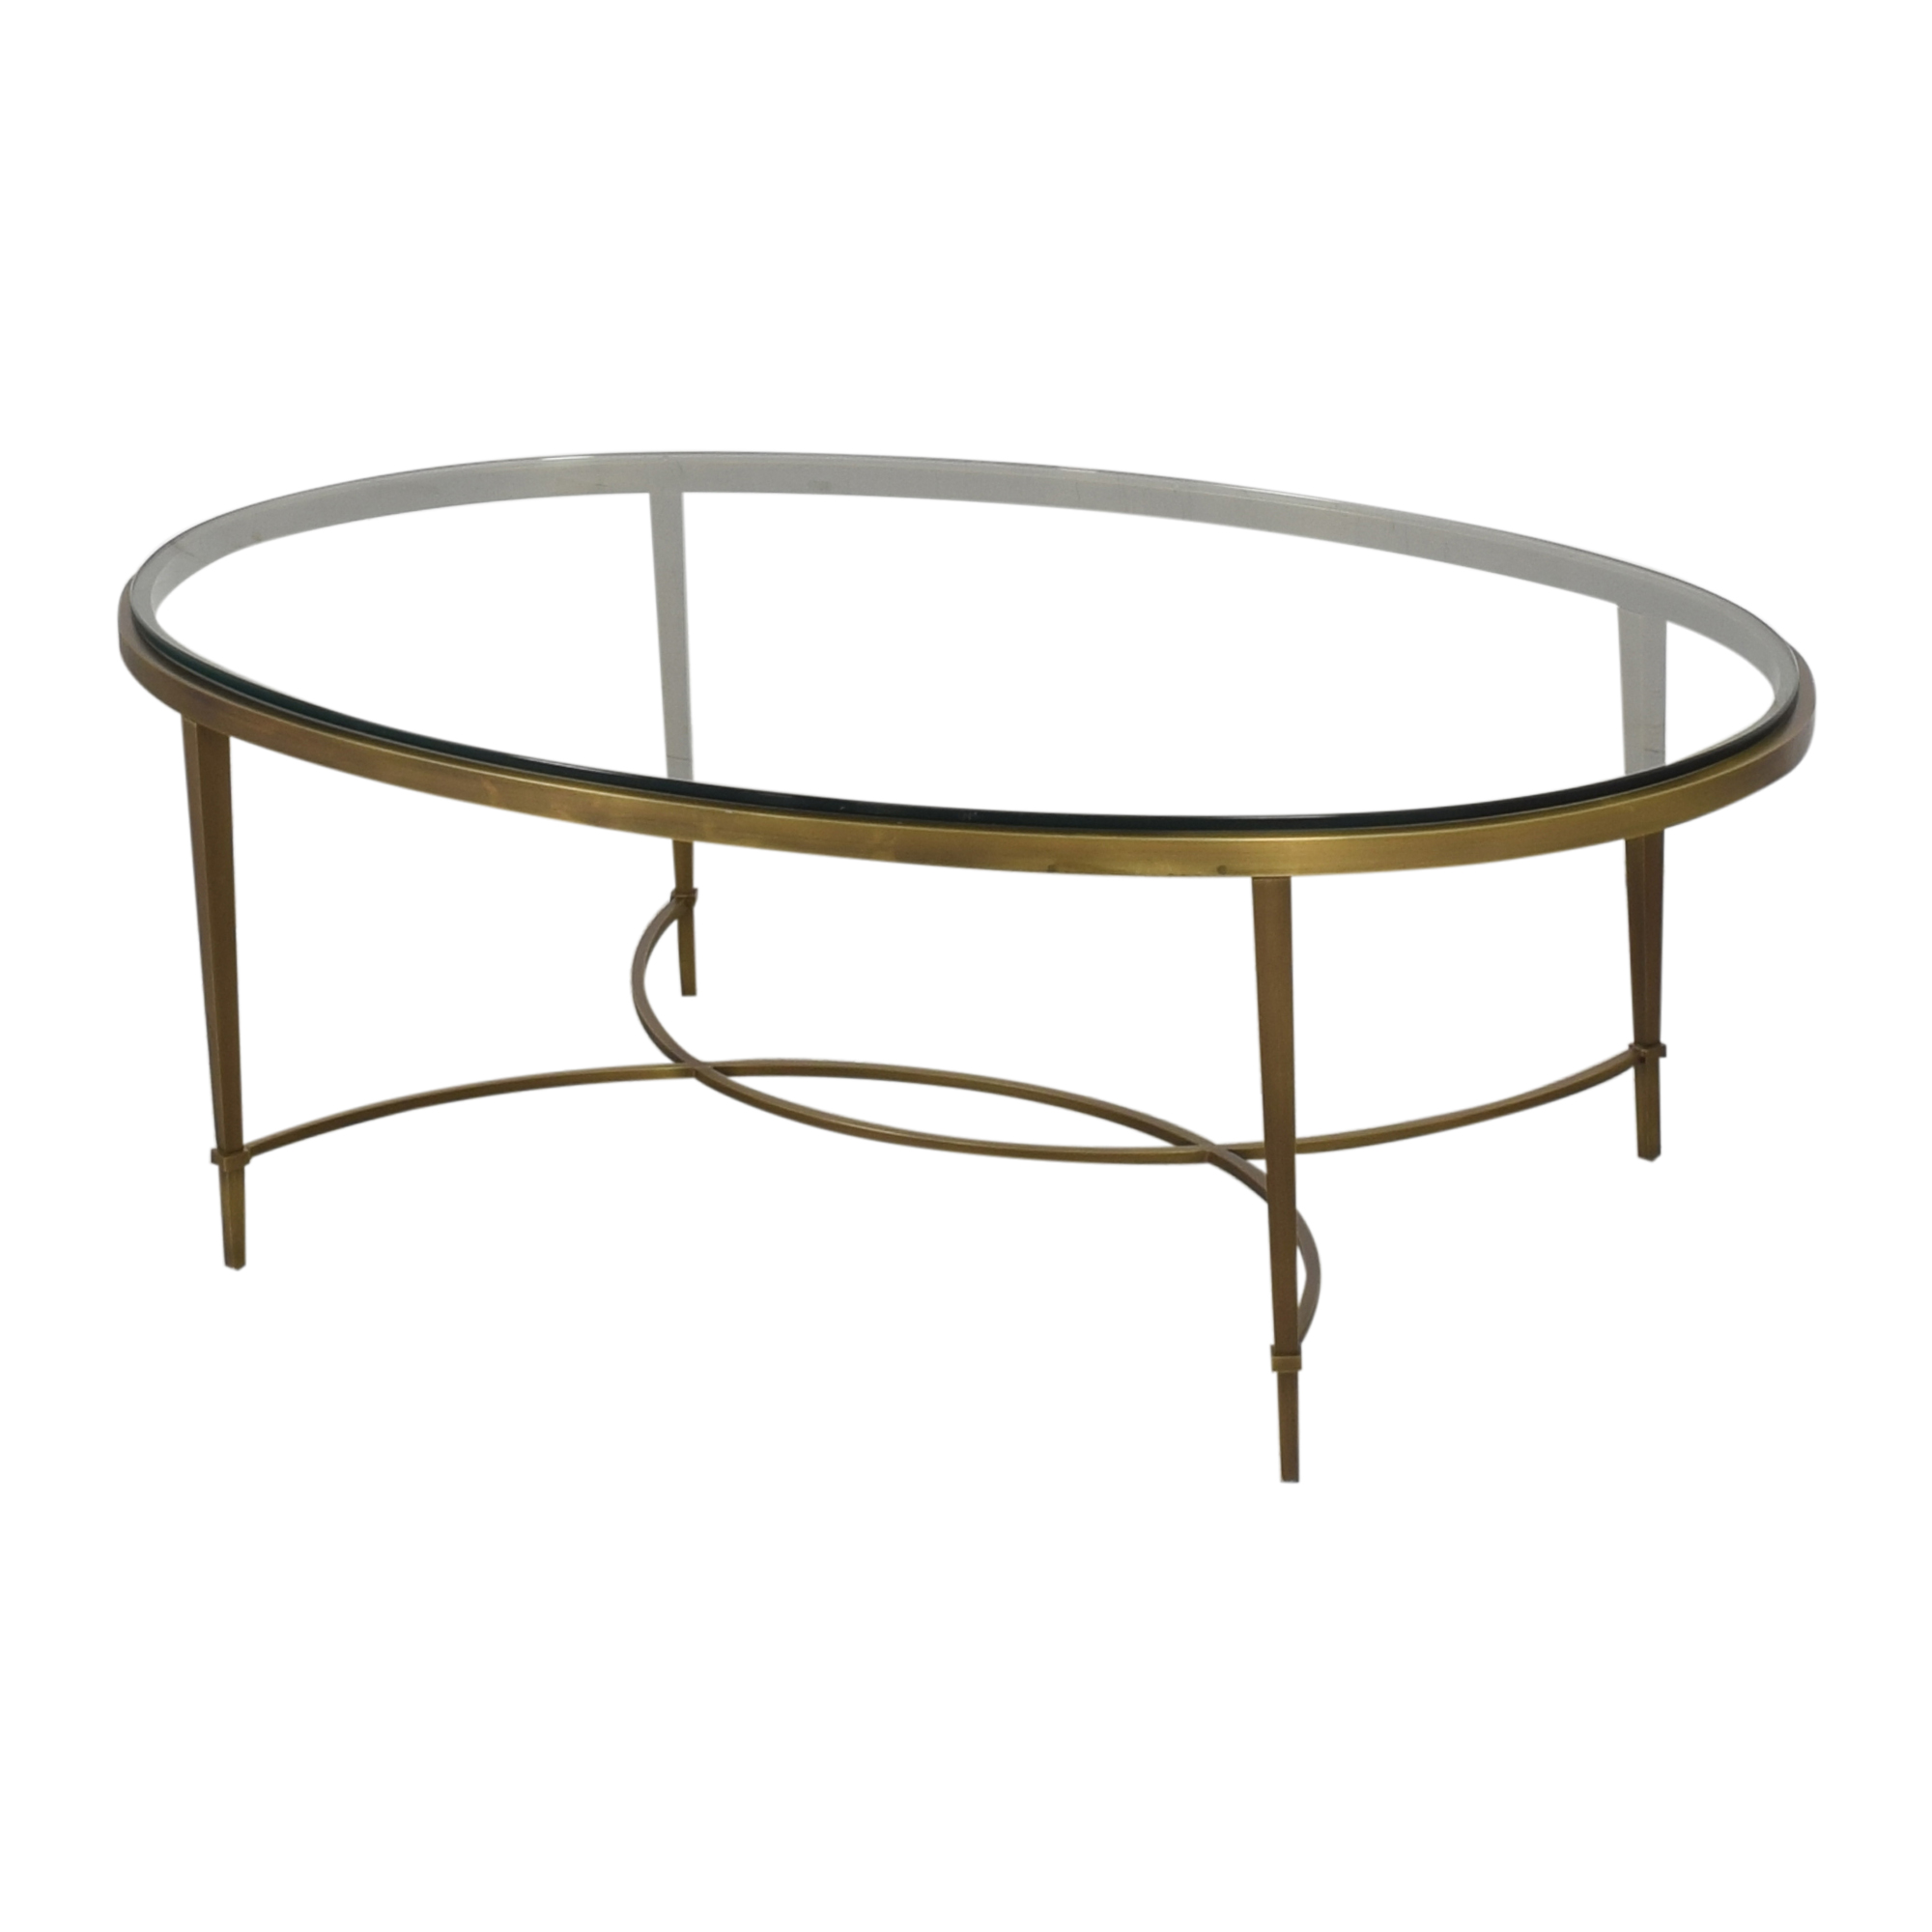 Baker Furniture Baker Furniture Oval Coffee Table coupon